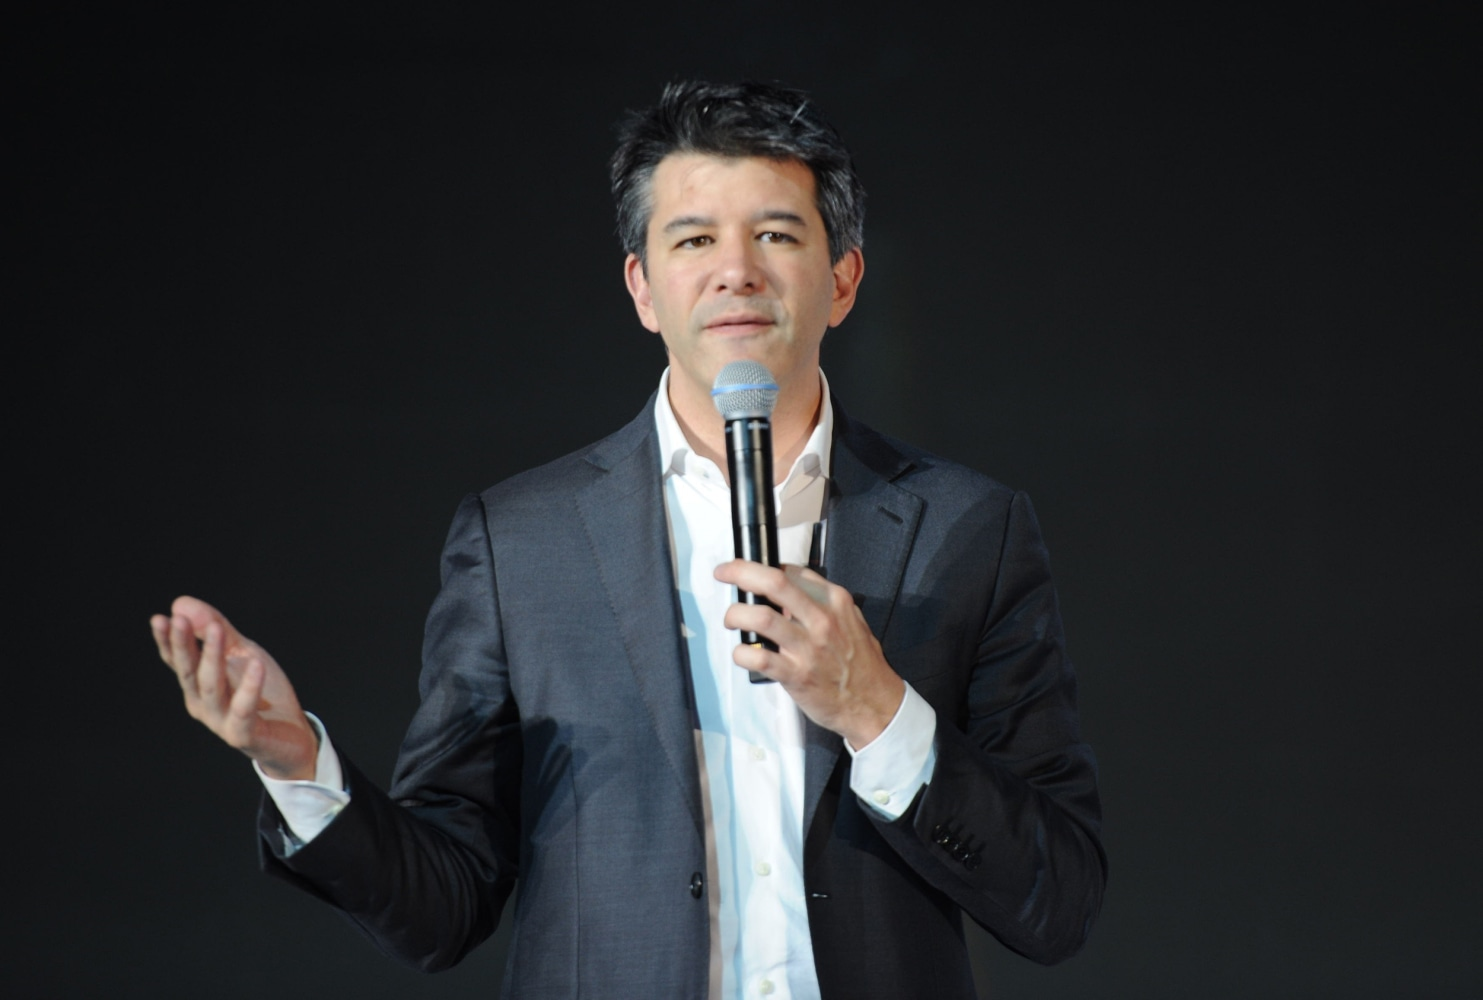 Uber Investor sues former CEO Kalanick, forcing him off the board